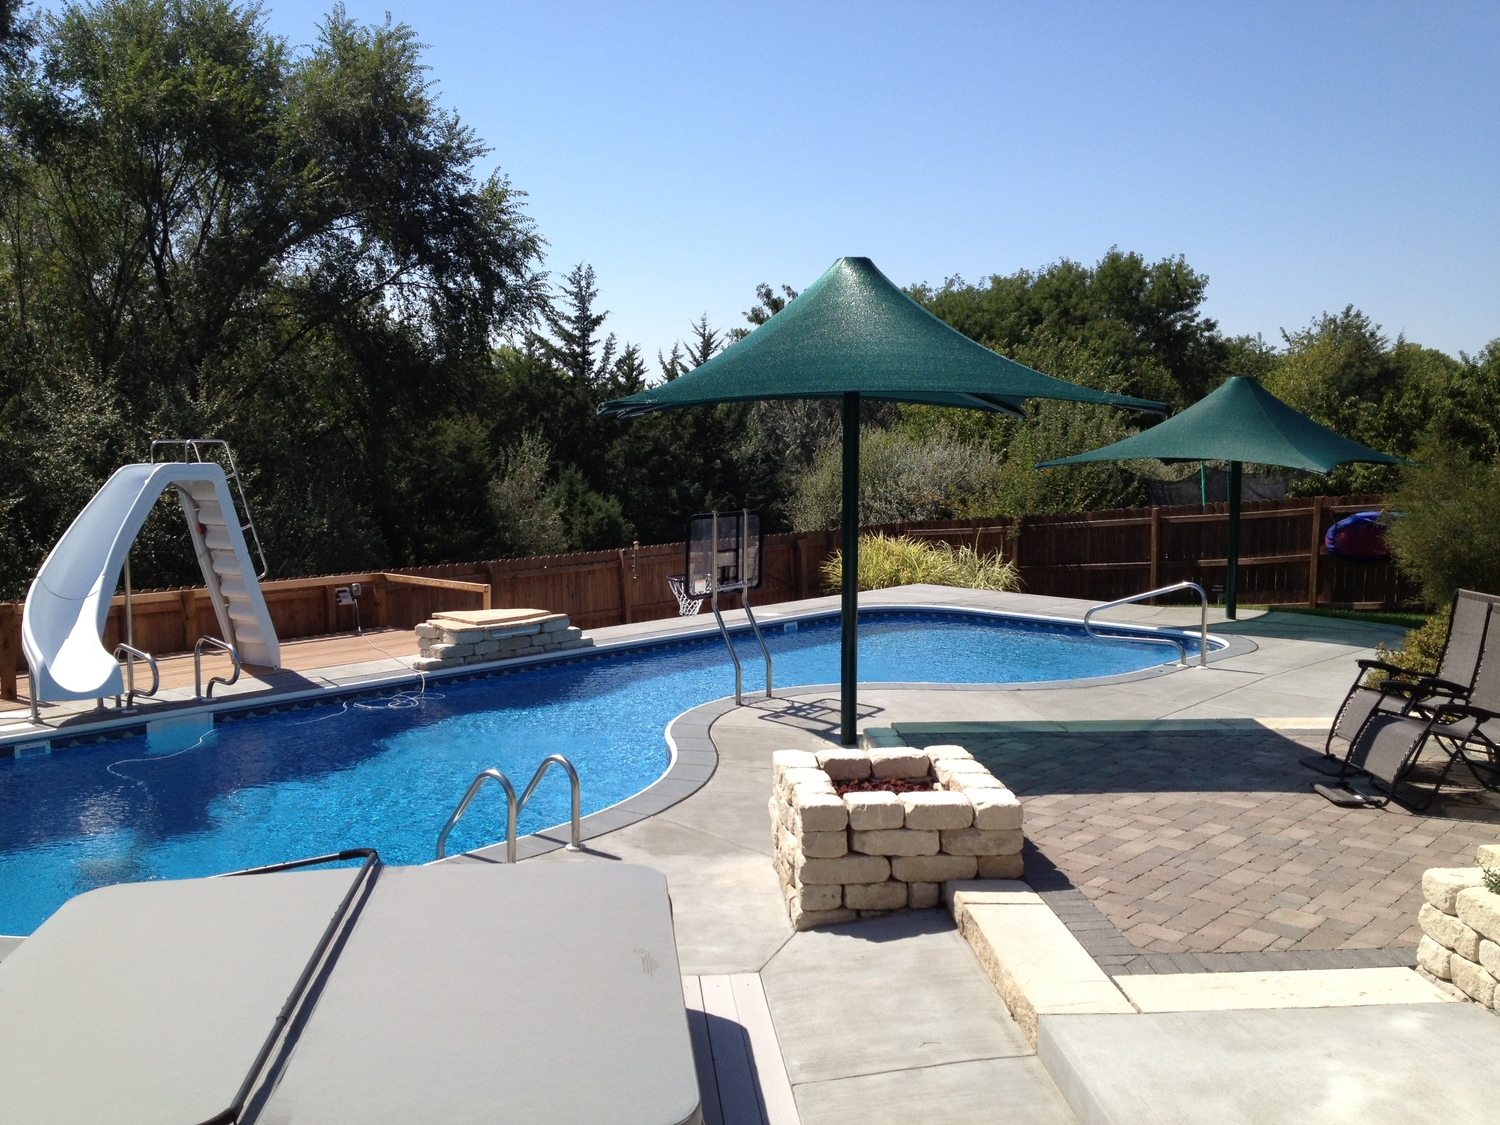 Stanger Pool Amp Spa The Omaha Area S Elite Pool Builder